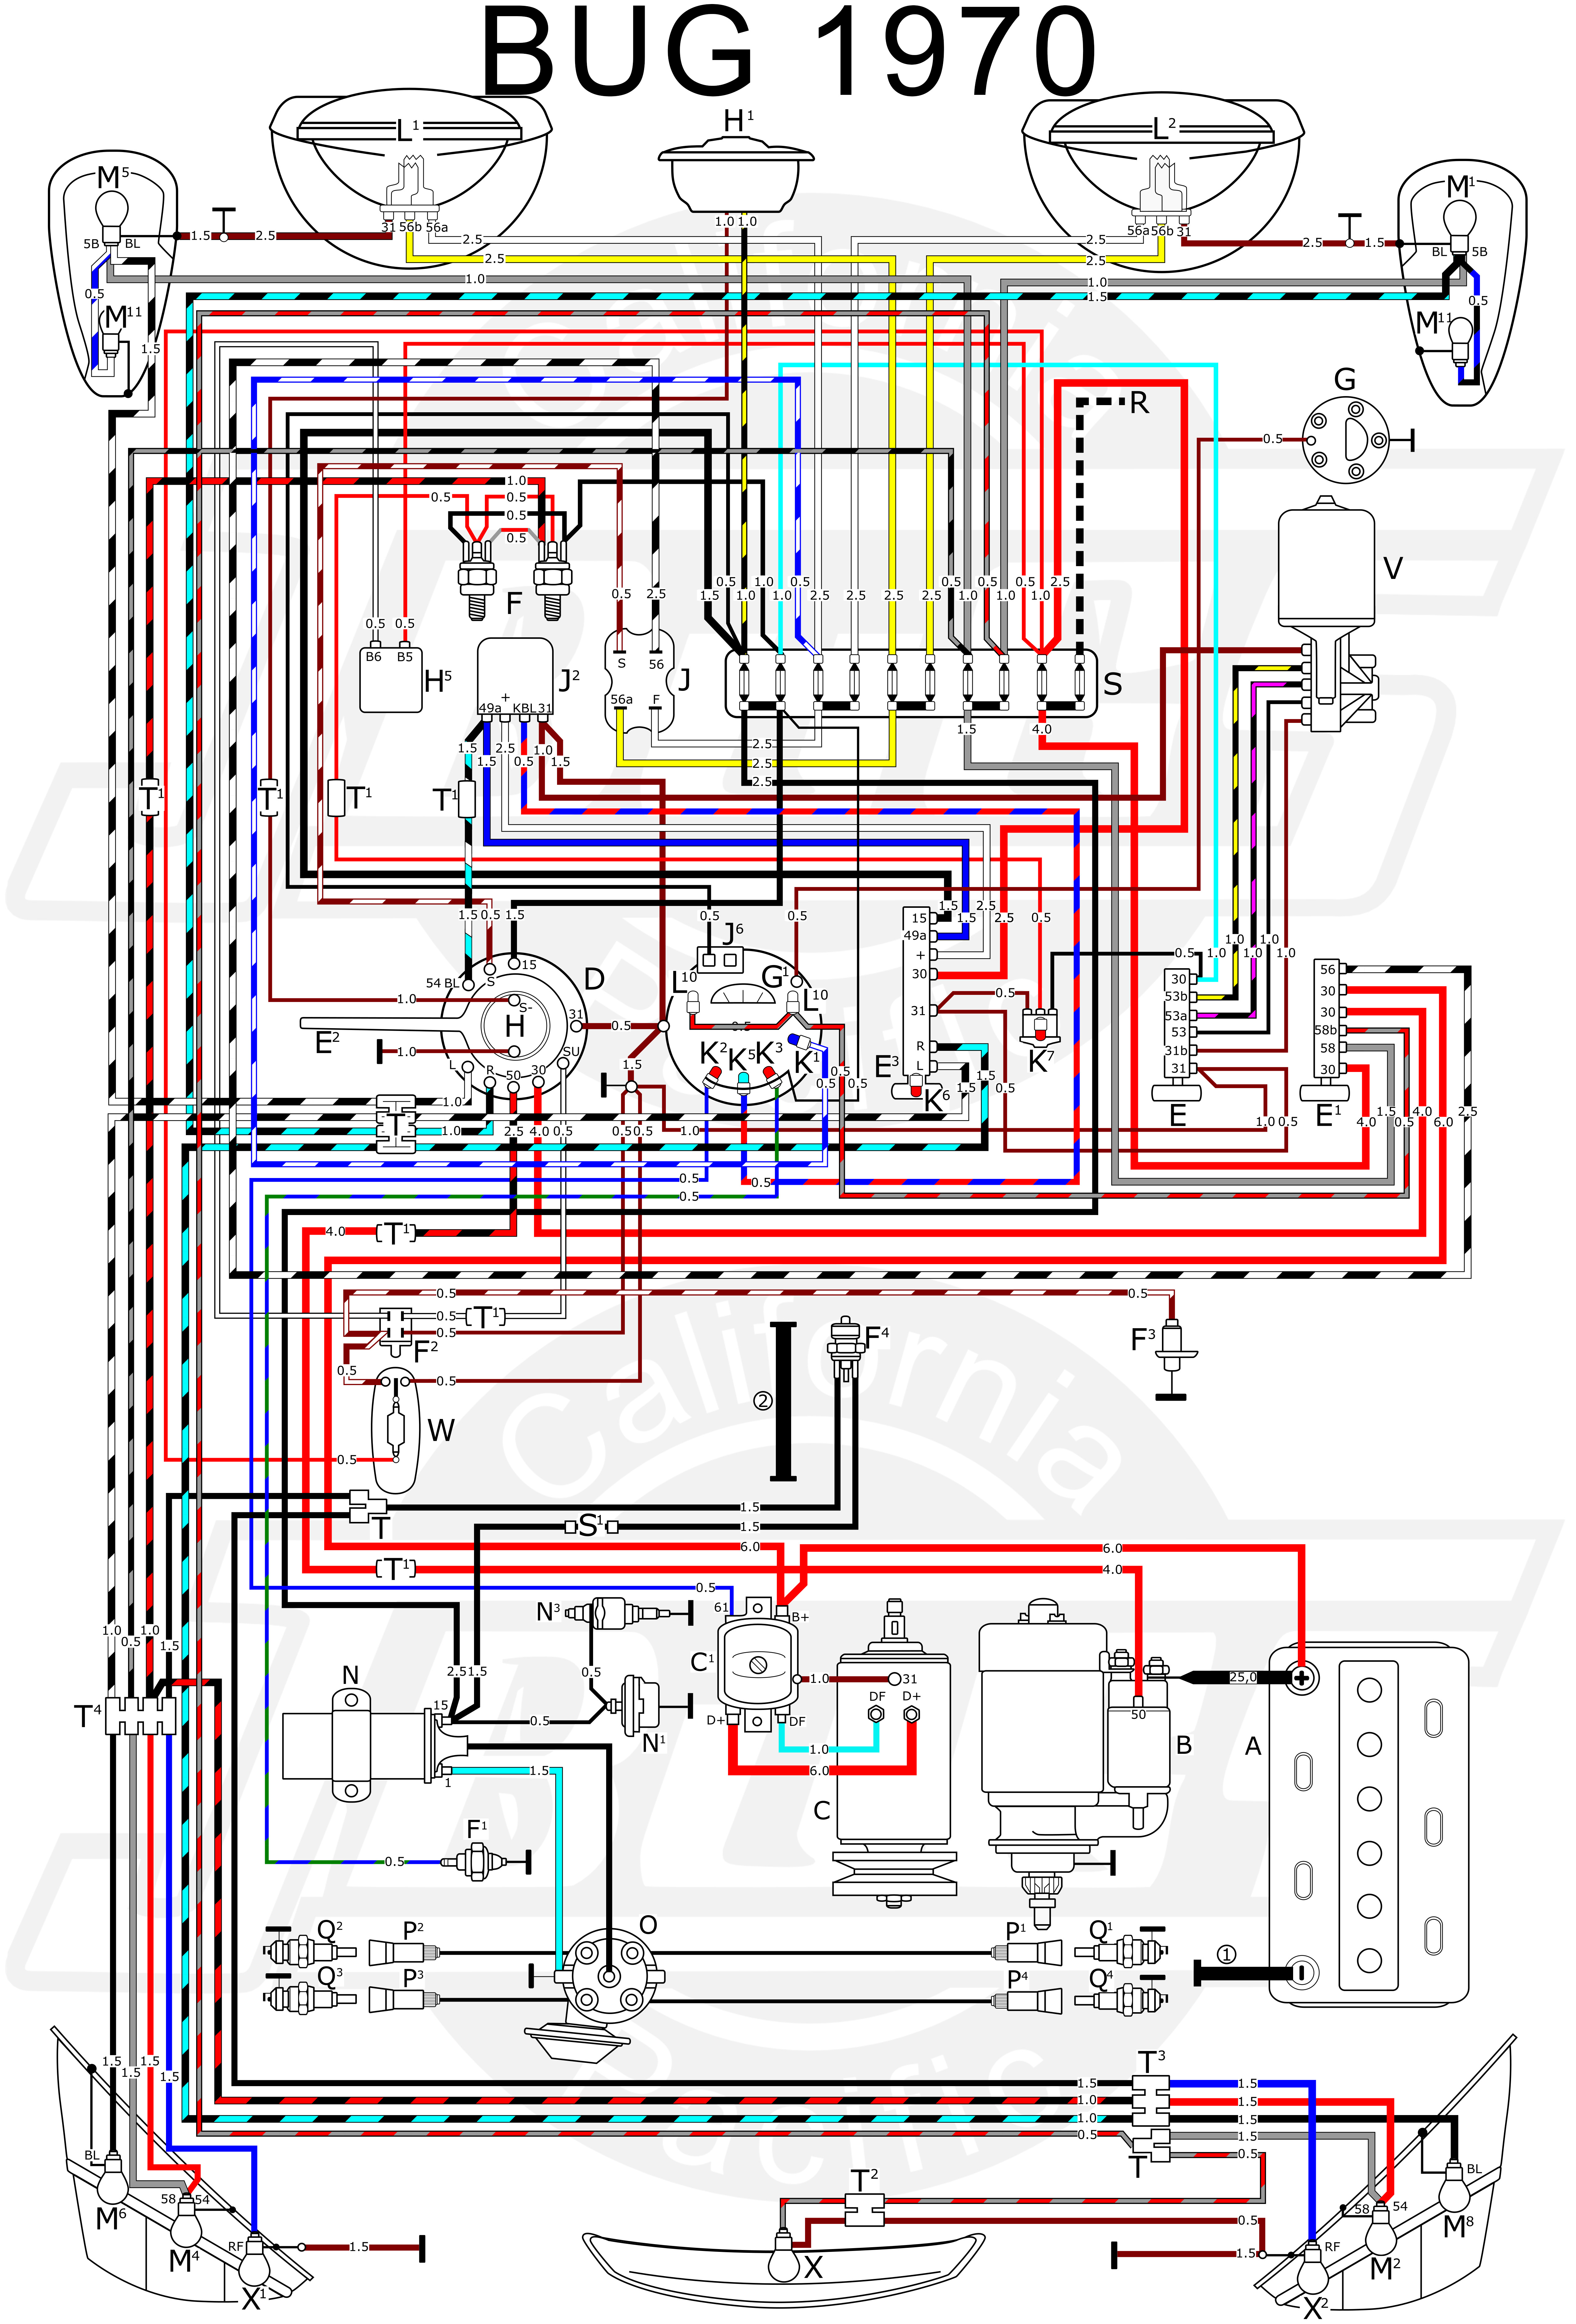 1972 vw beetle wiring diagram 19 sg dbd de \u2022 74 VW Beetle MPG 1974 vw beetle lights wire diagrams online wiring diagram data rh 1 clickfx de 1972 vw beetle wiring schematic 1972 vw beetle wiring diagram